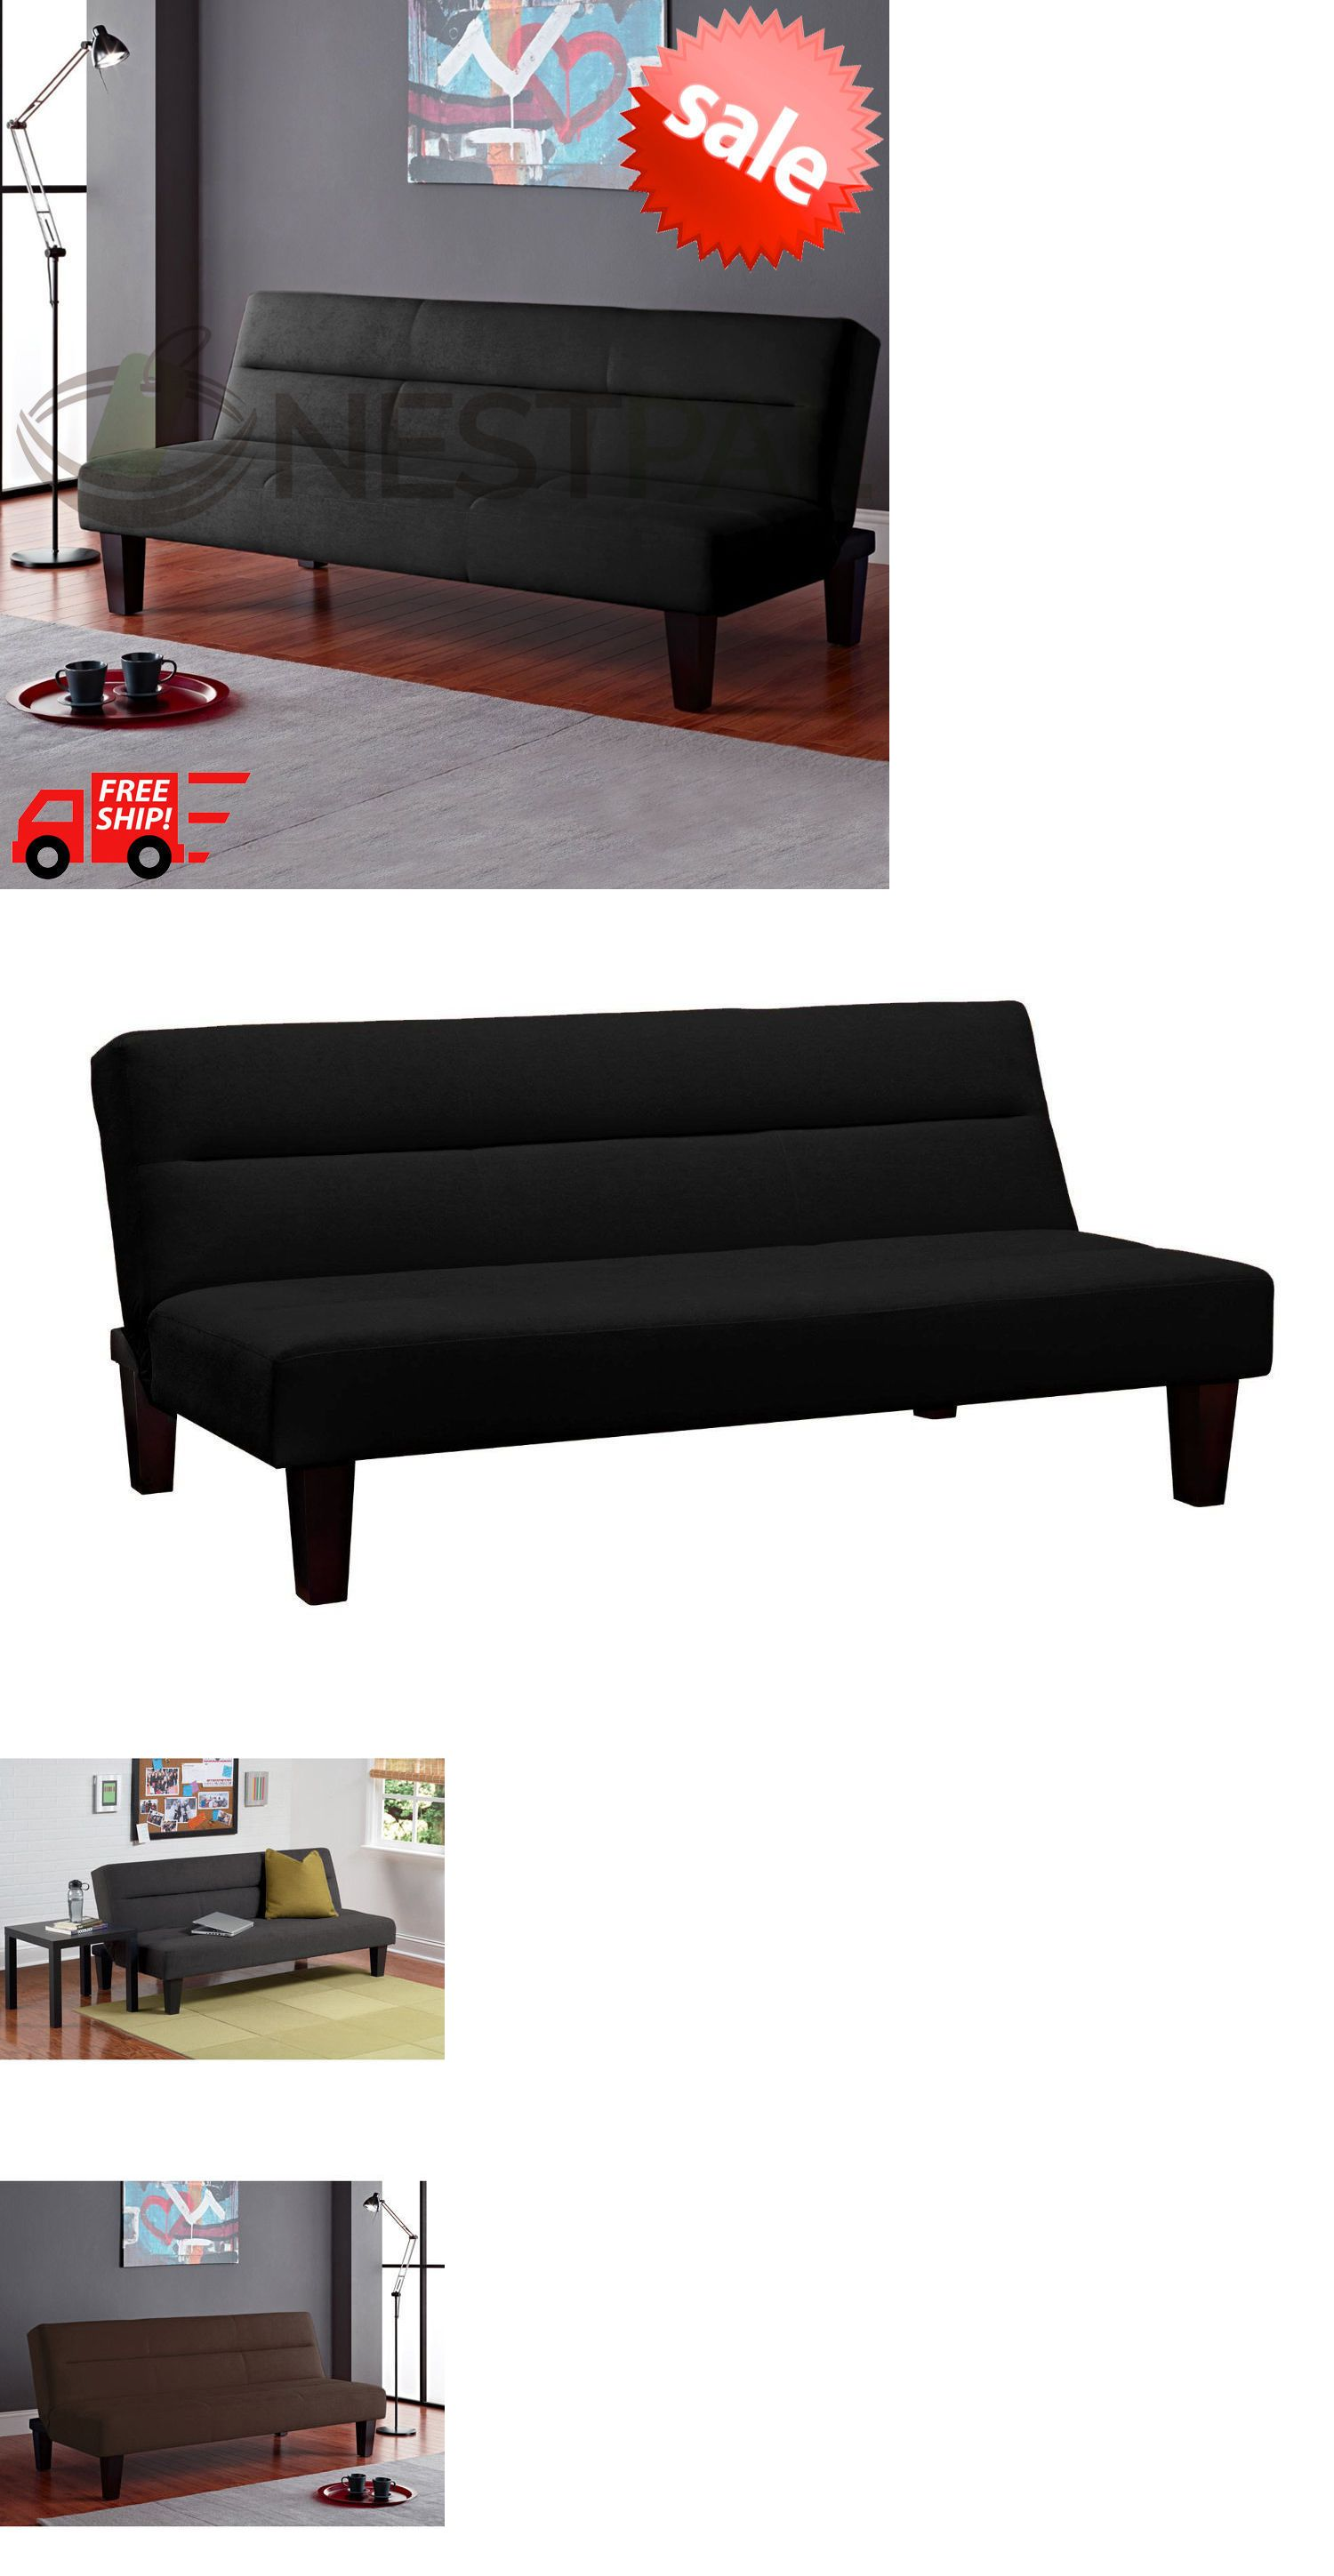 Futons Frames and Covers 131579: Modern Futon Sofa Bed Convertible ...